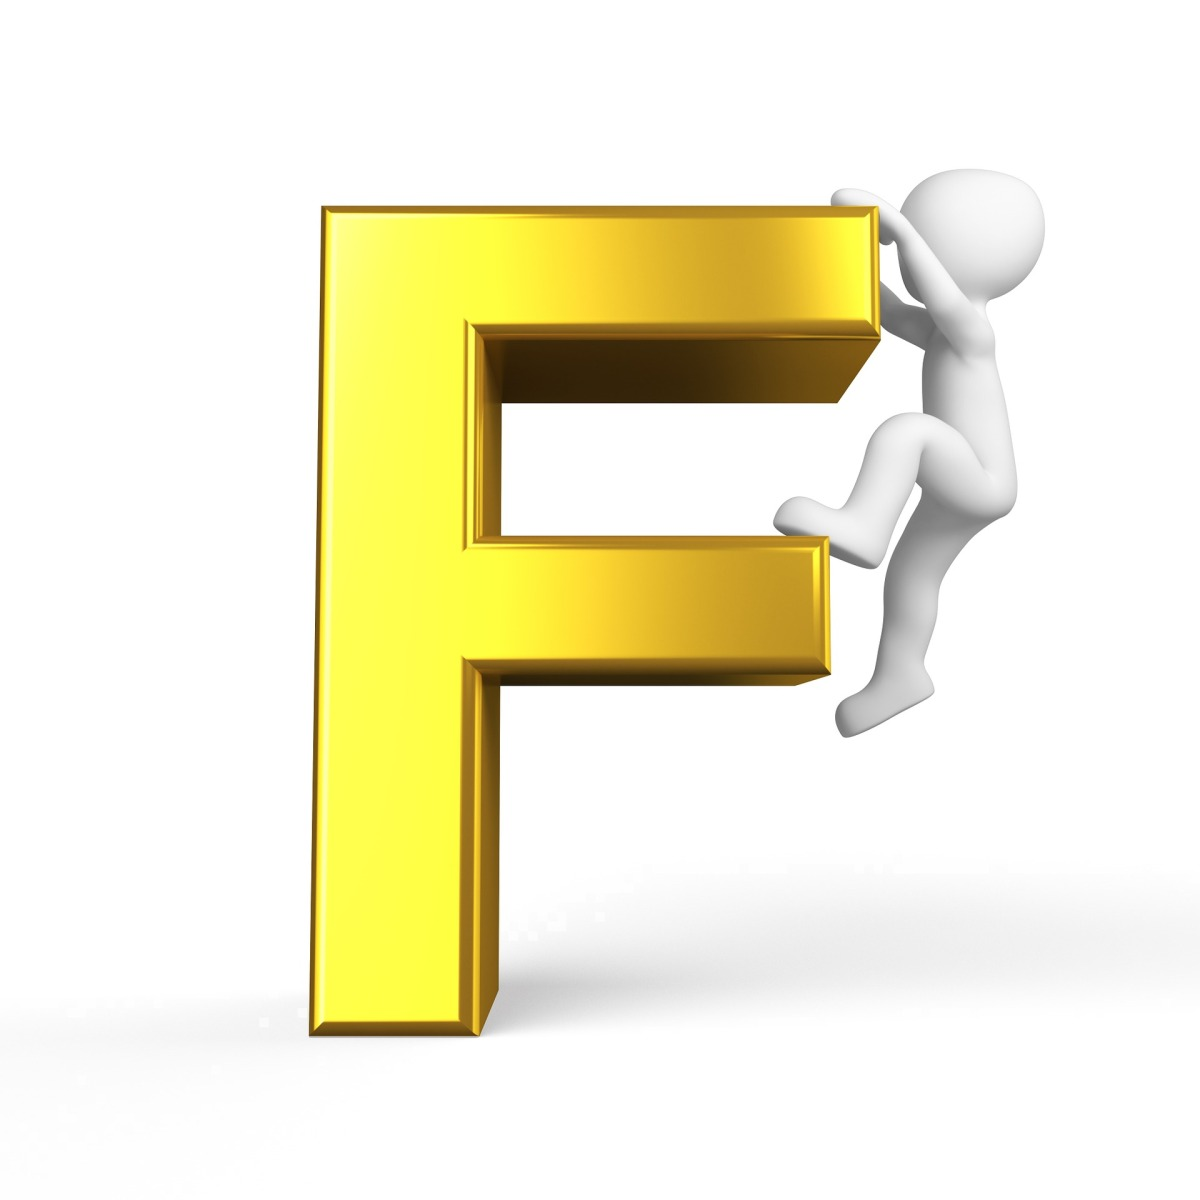 F is for Fat